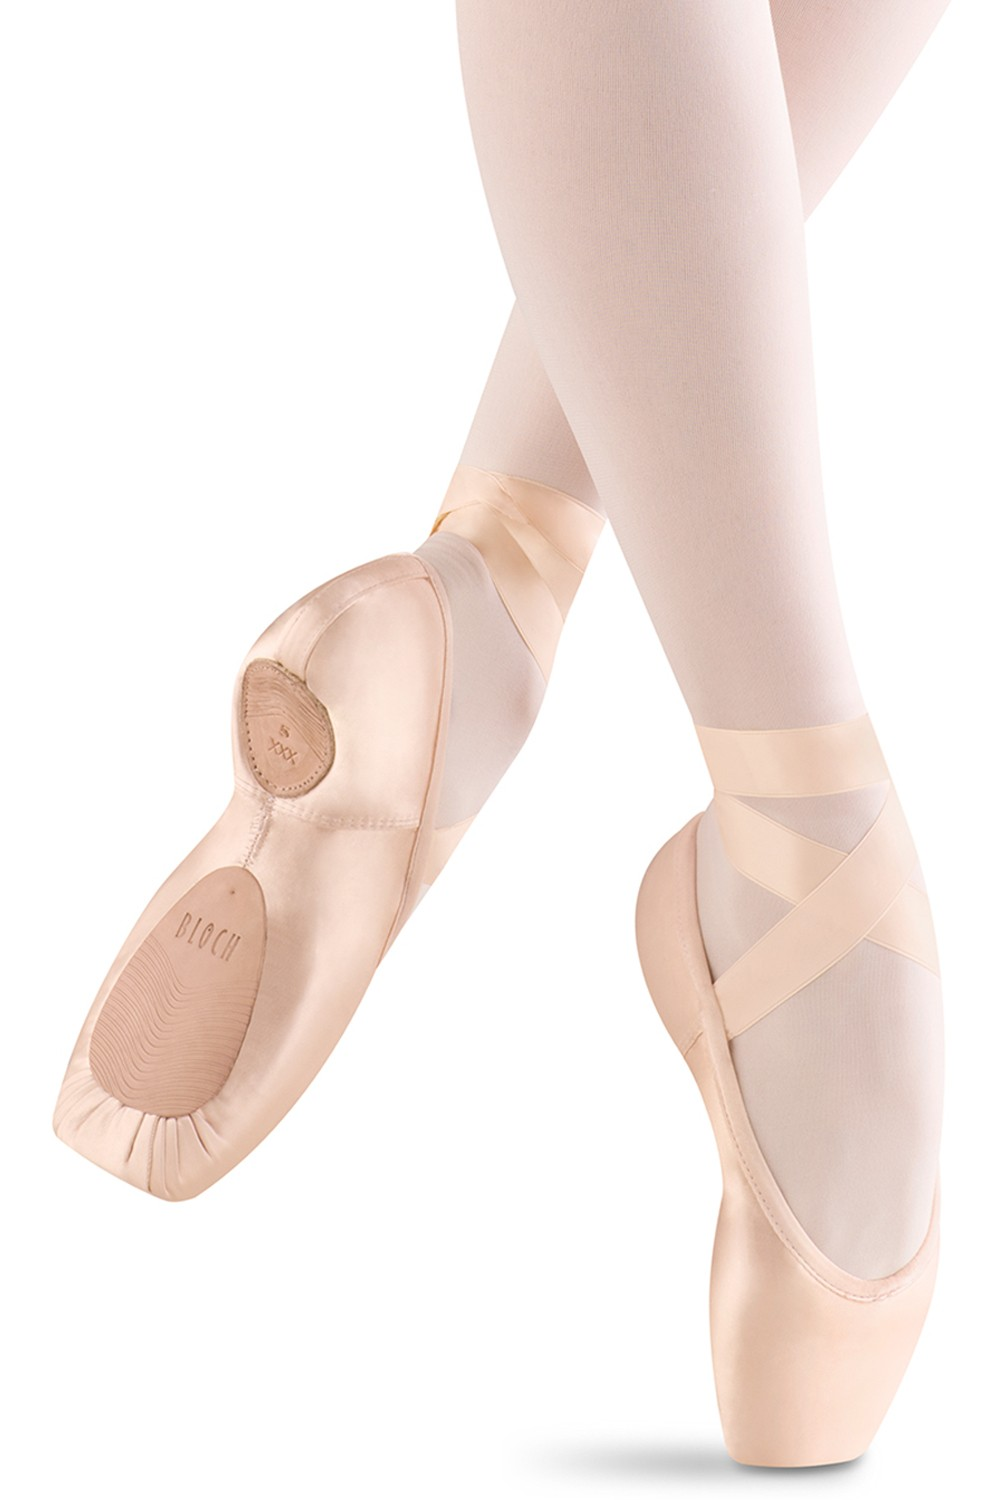 Dramatica Pointe Shoes